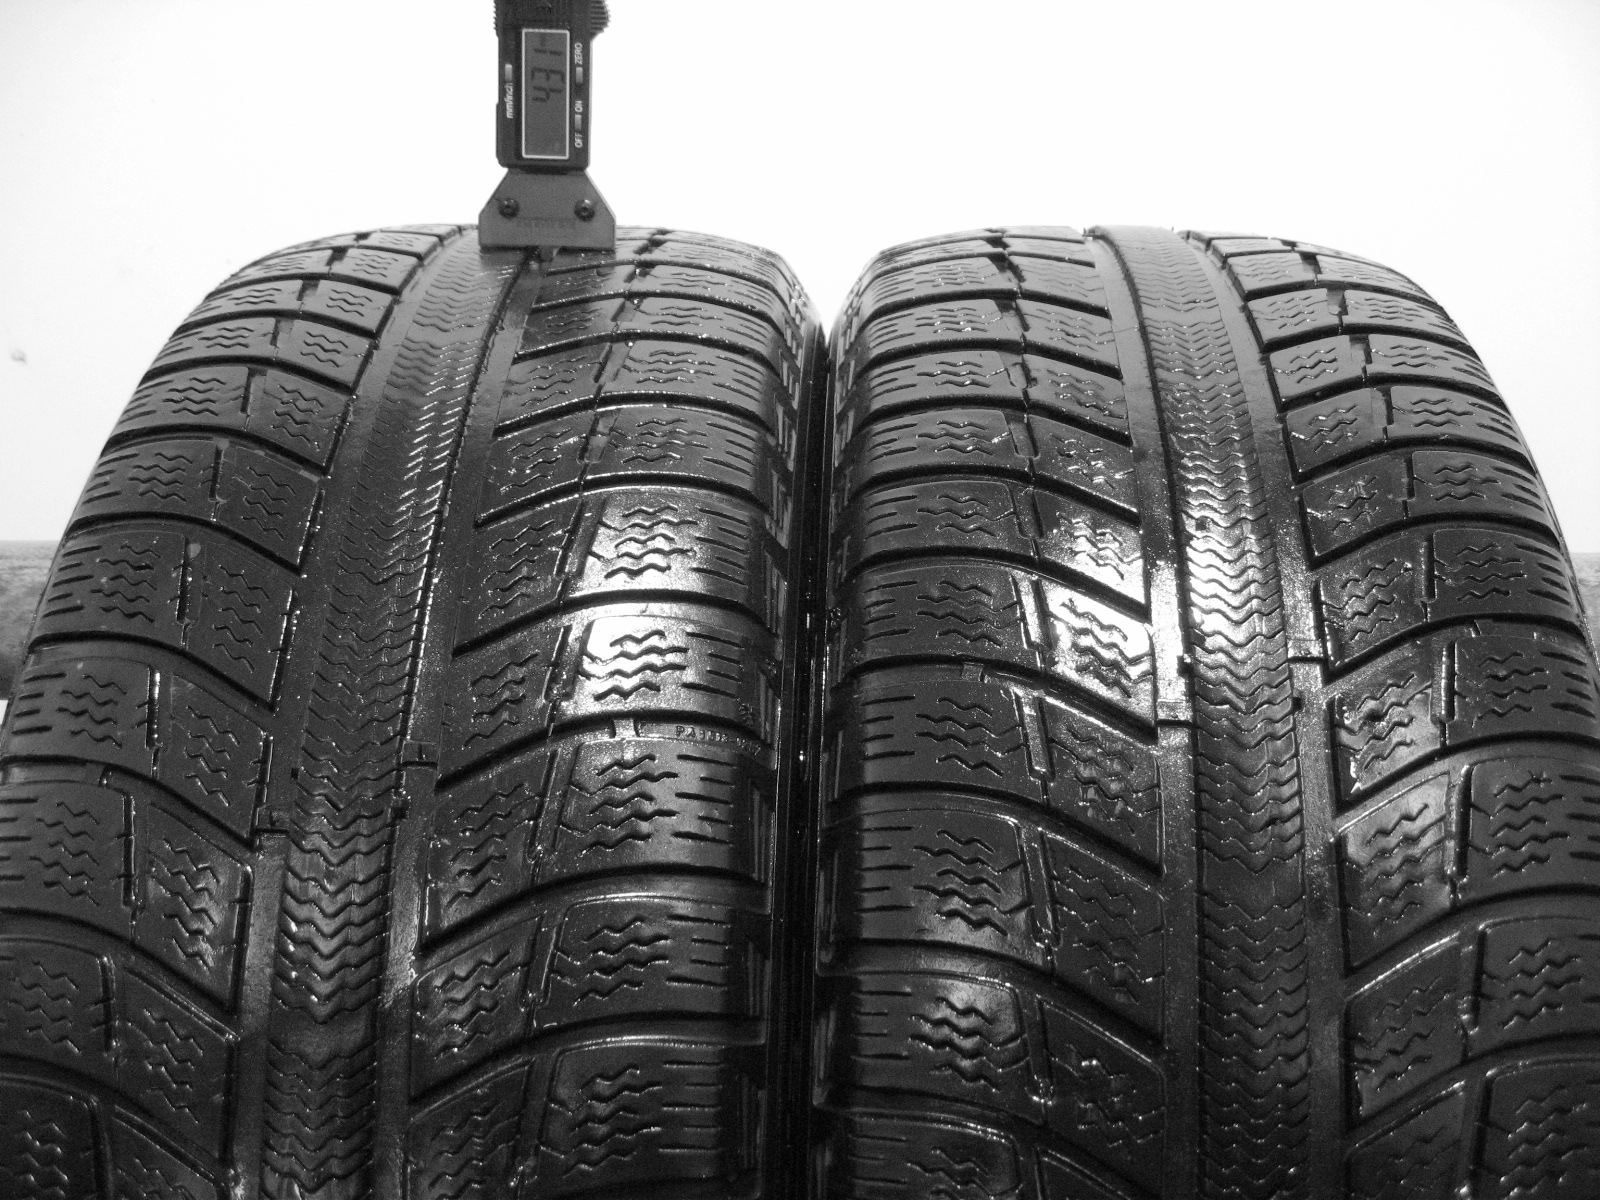 Použité-Pneu-Bazar - 215/55 R16 MICHELIN PRIMACY ALPIN PA3 4mm